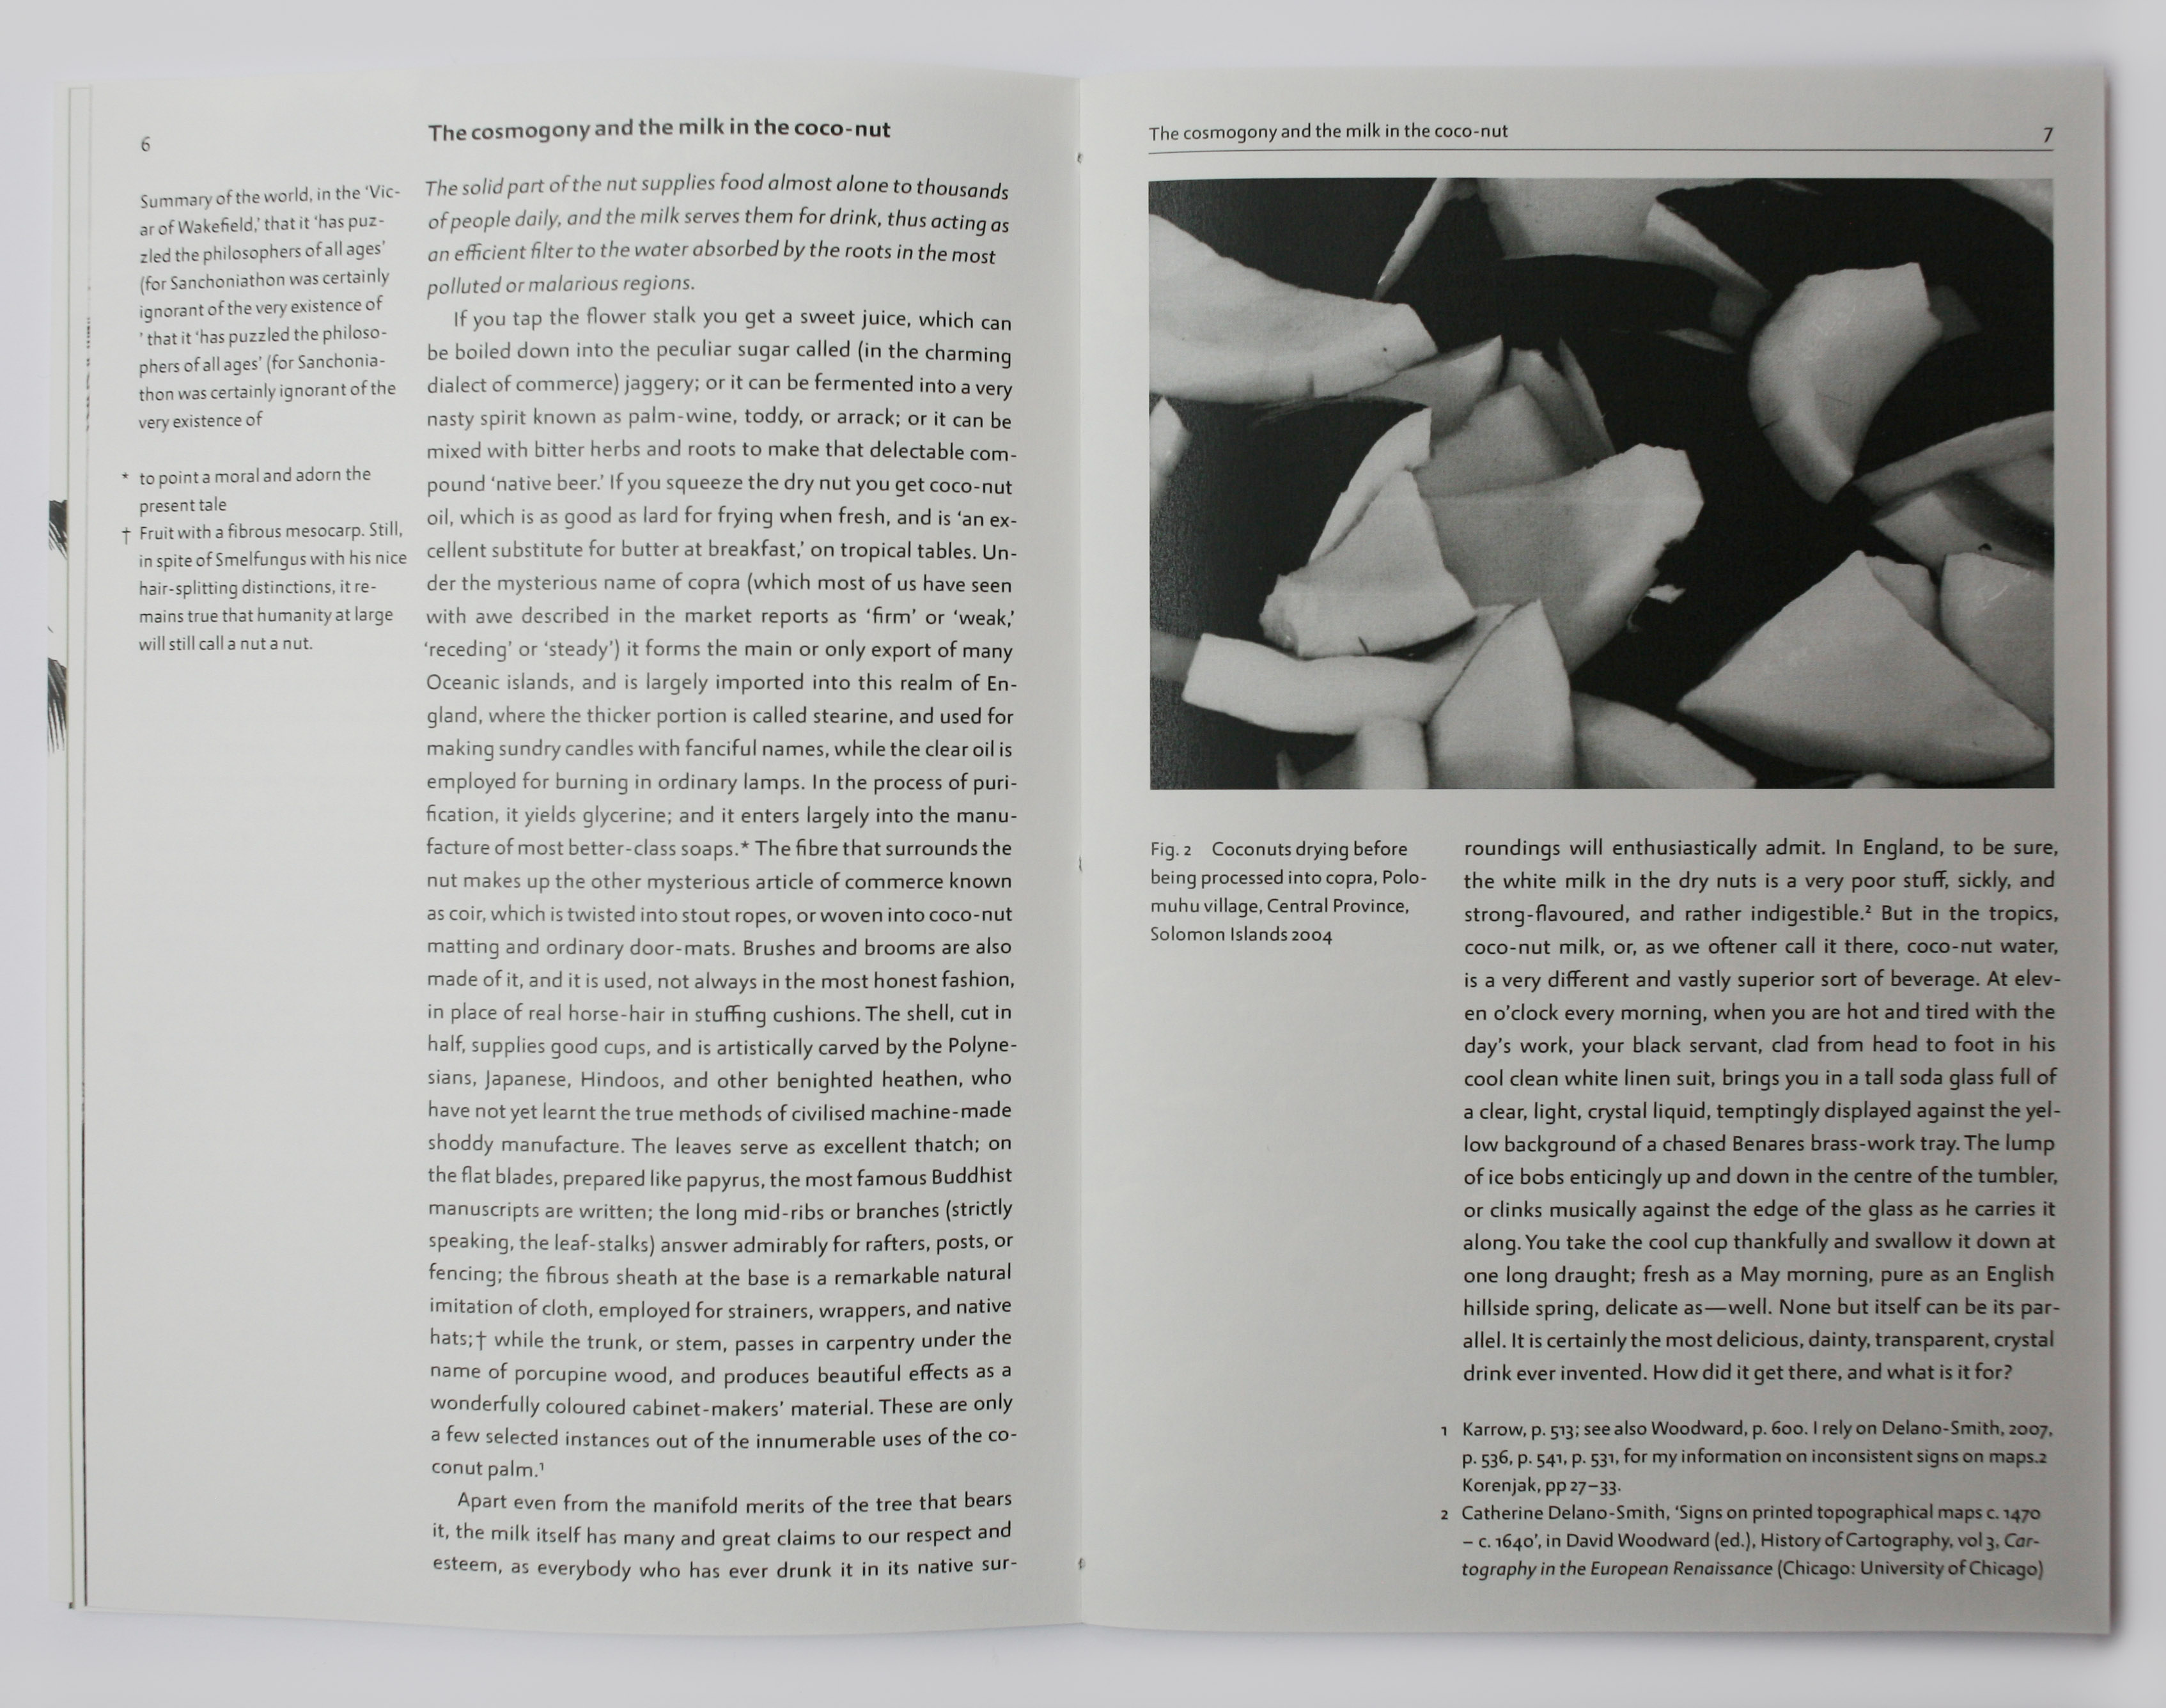 Spread in book with text and photograph